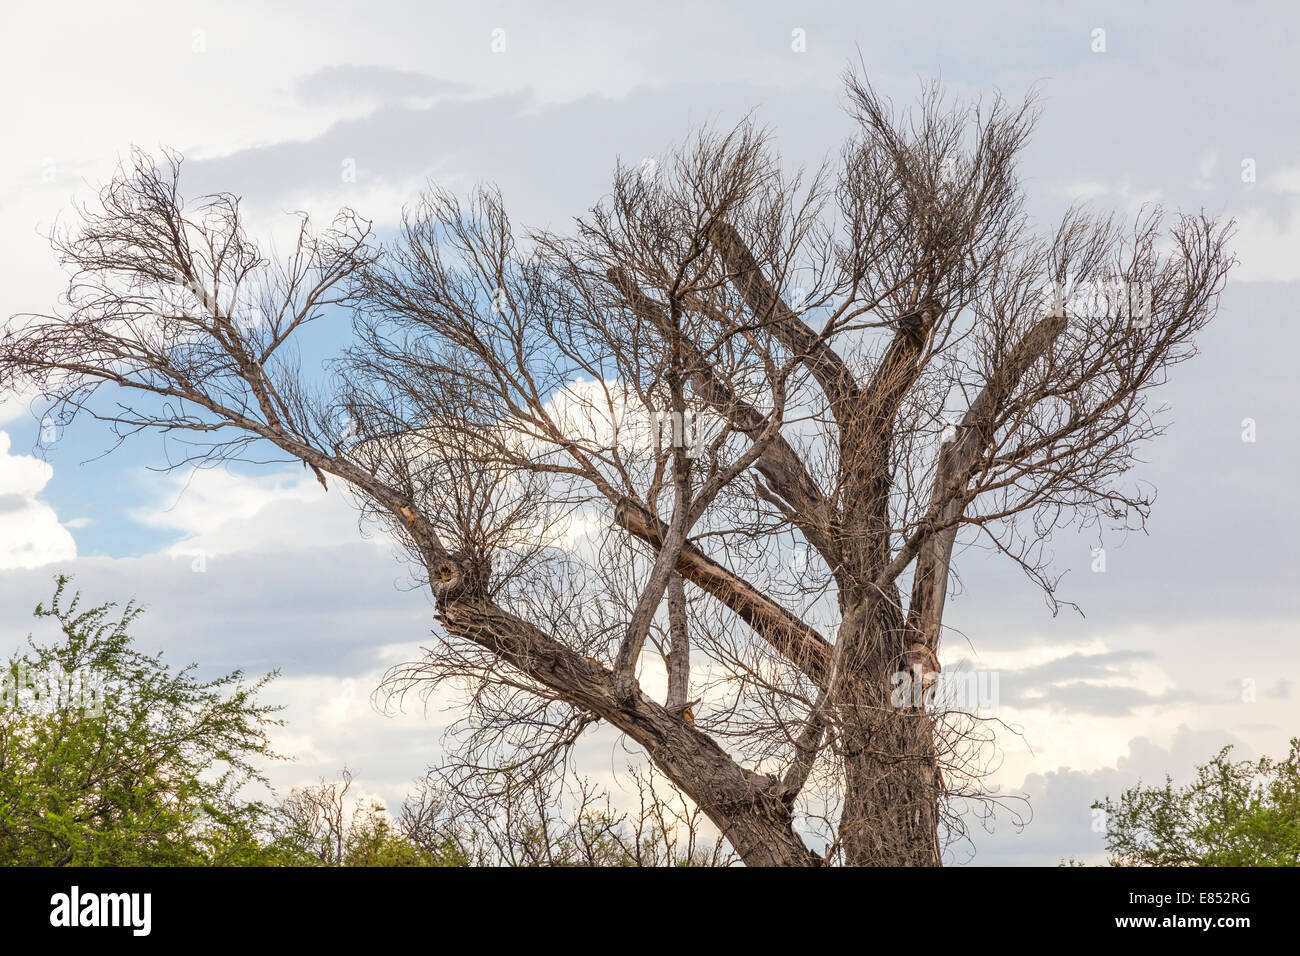 Bare tree with storm clouds developing at Dugout Wells in Big Bend National Park. Stock Photo